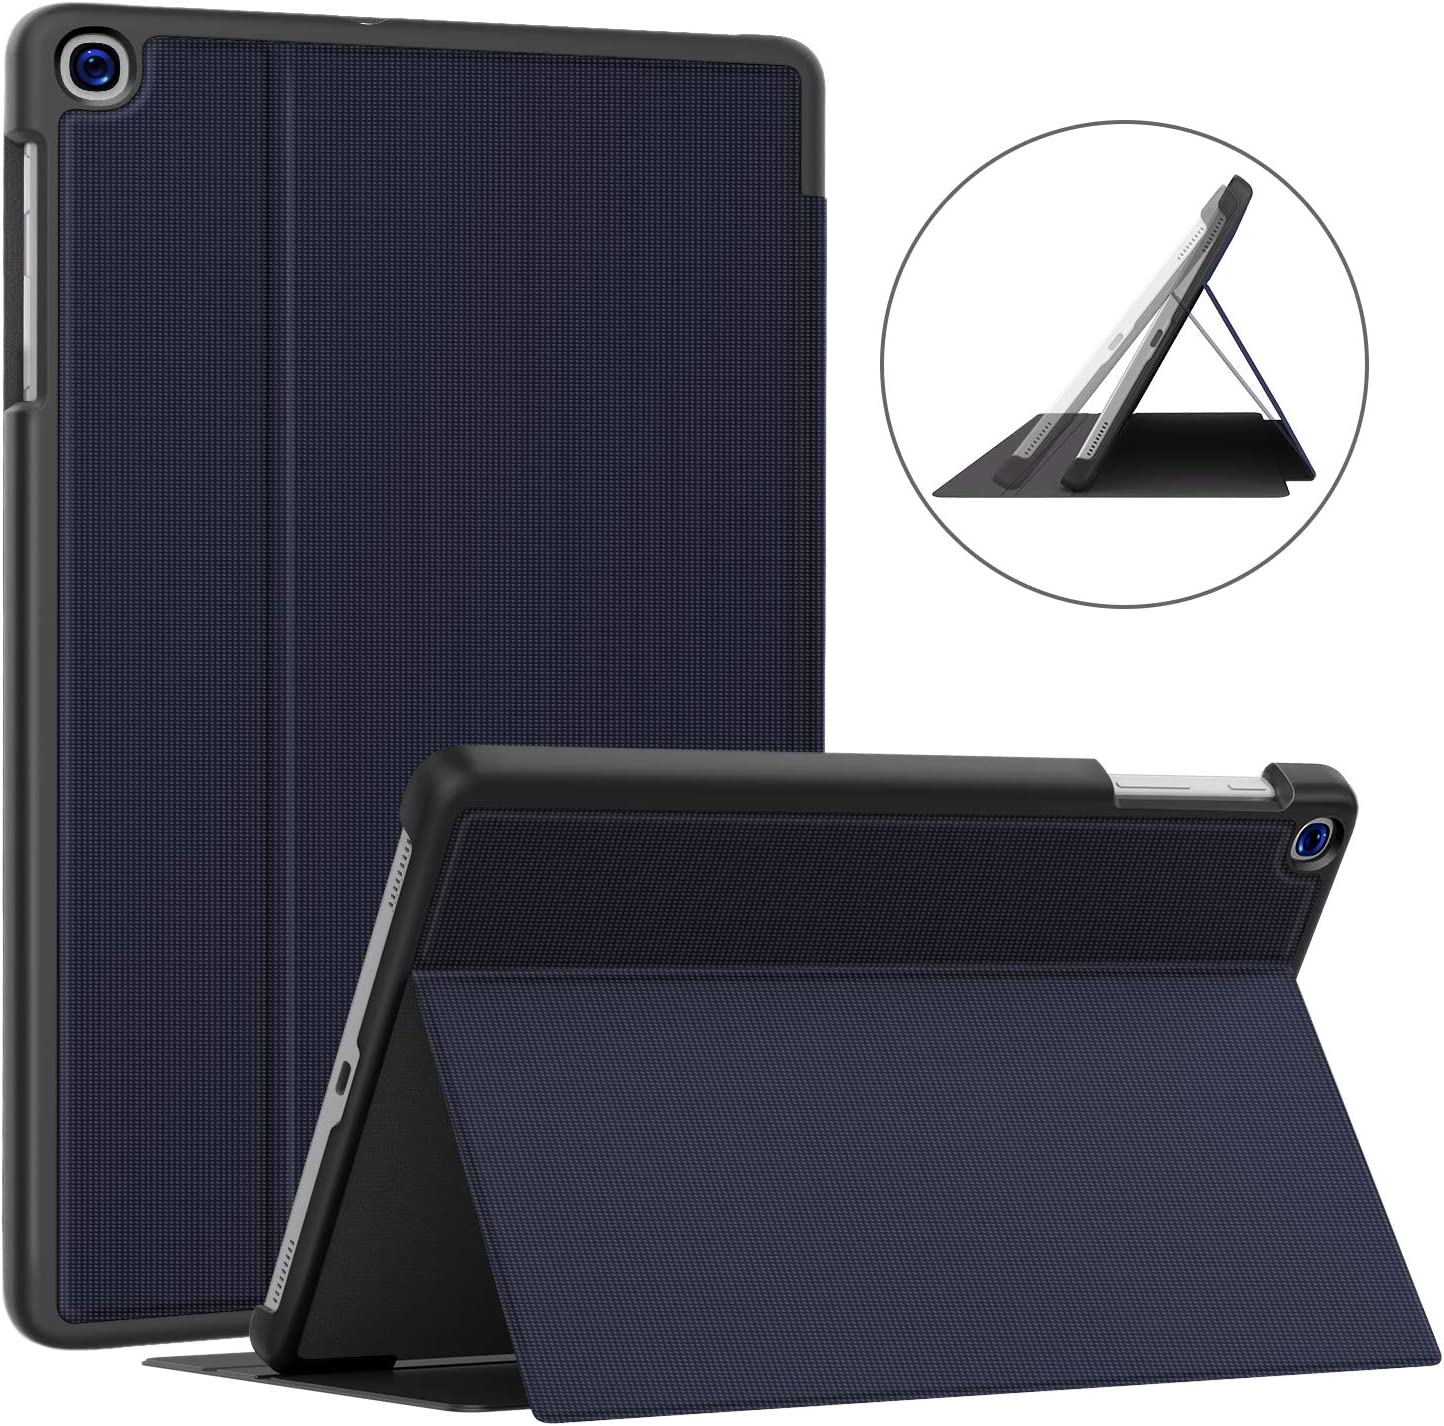 Soke Galaxy Tab A 10.1 Case 2019, Premium Shock Proof Stand Folio Case, Multi- Viewing Angles, Soft TPU Back Cover for Samsung Galaxy Tab A 10.1 inch Tablet [SM-T510/T515/T517],Dark Blue